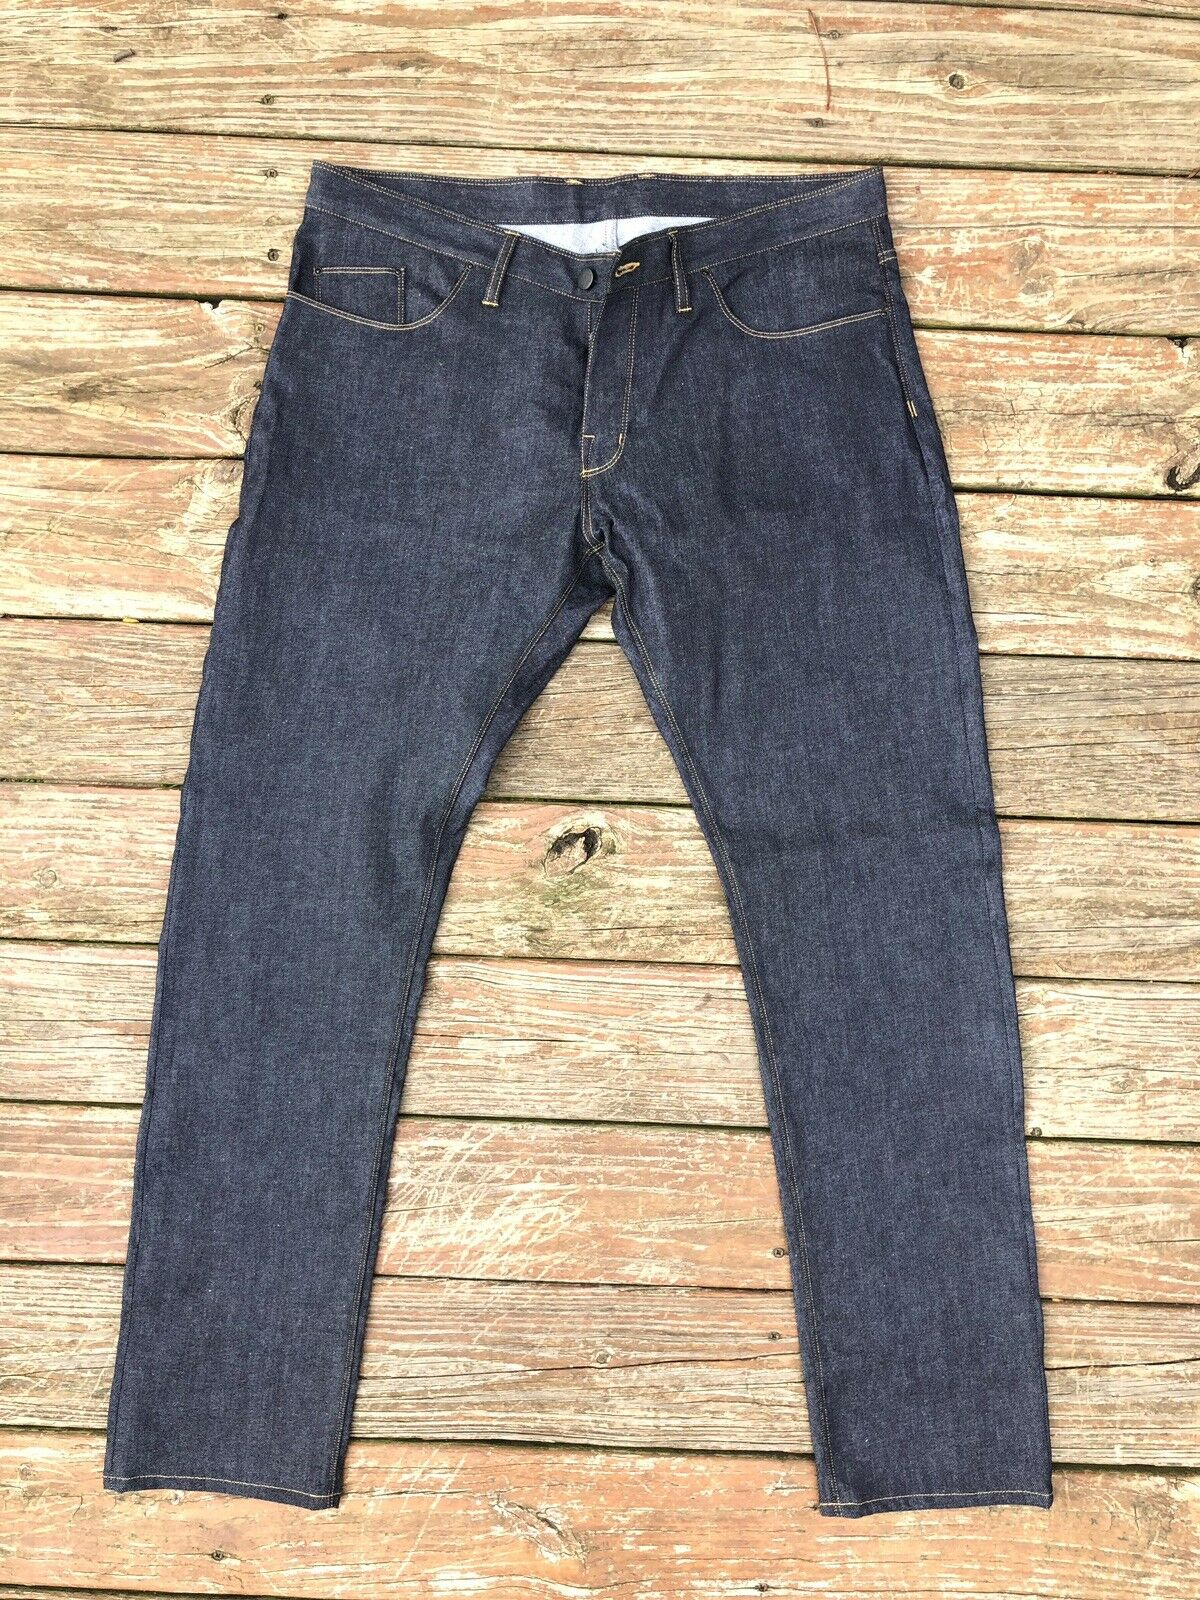 Mens PFELD Handmade in USA Denim Jeans Size 40x36 Button Fly Slevedge Mint EUC